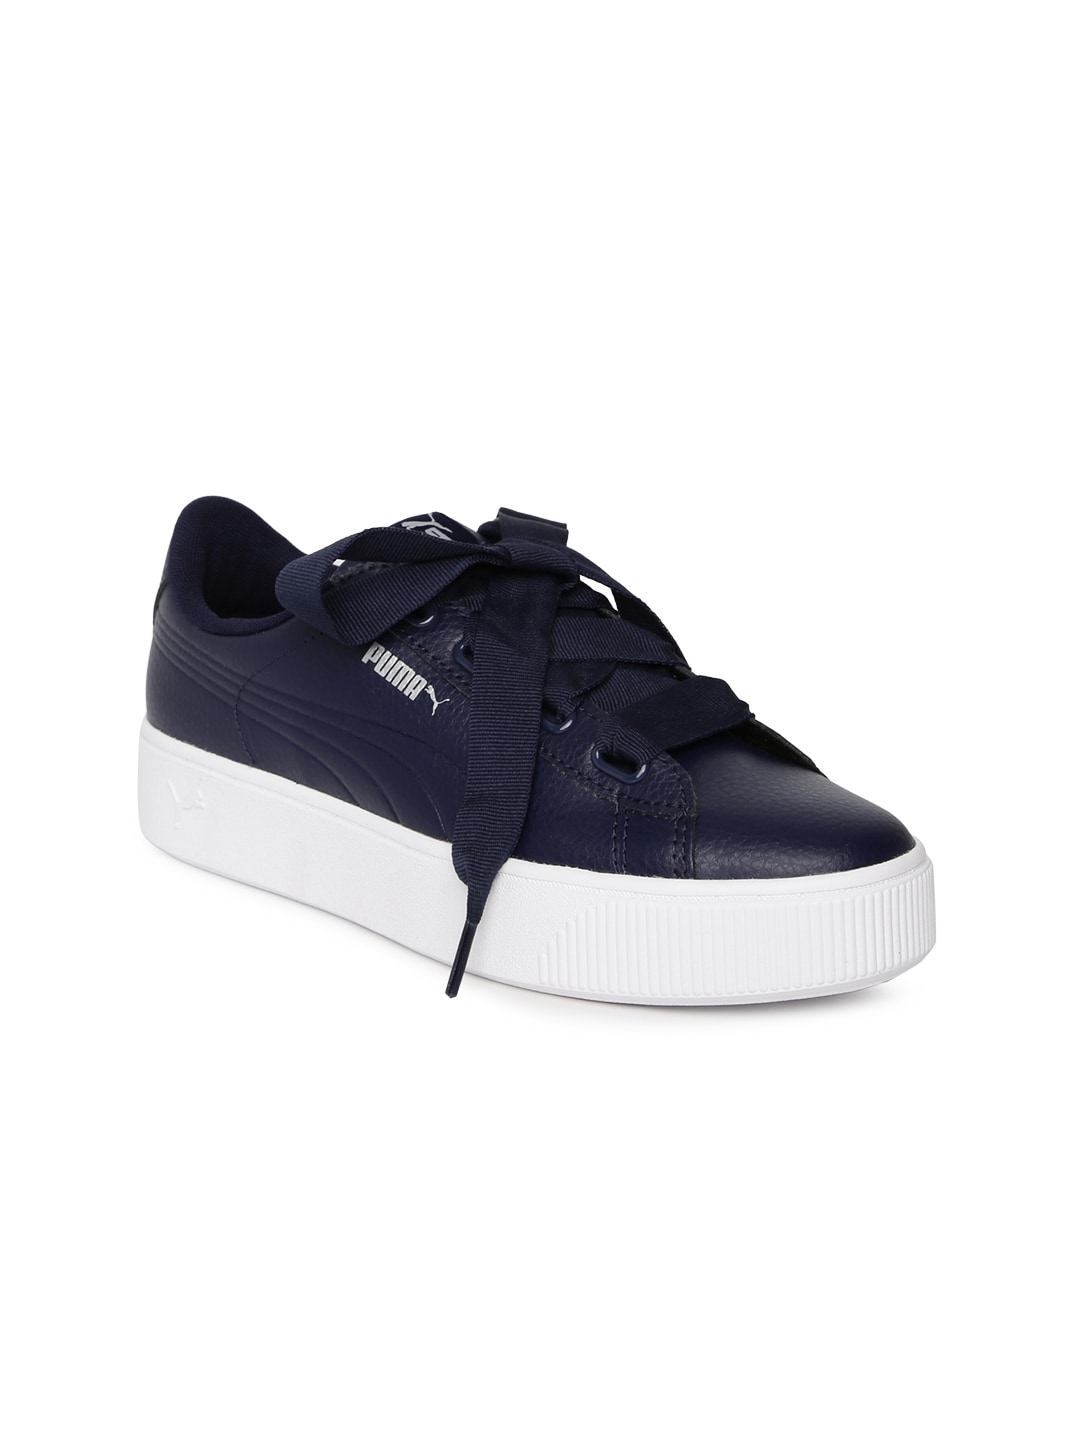 177ca5b709 Puma Leather Shoes - Buy Puma Leather Shoes Online in India